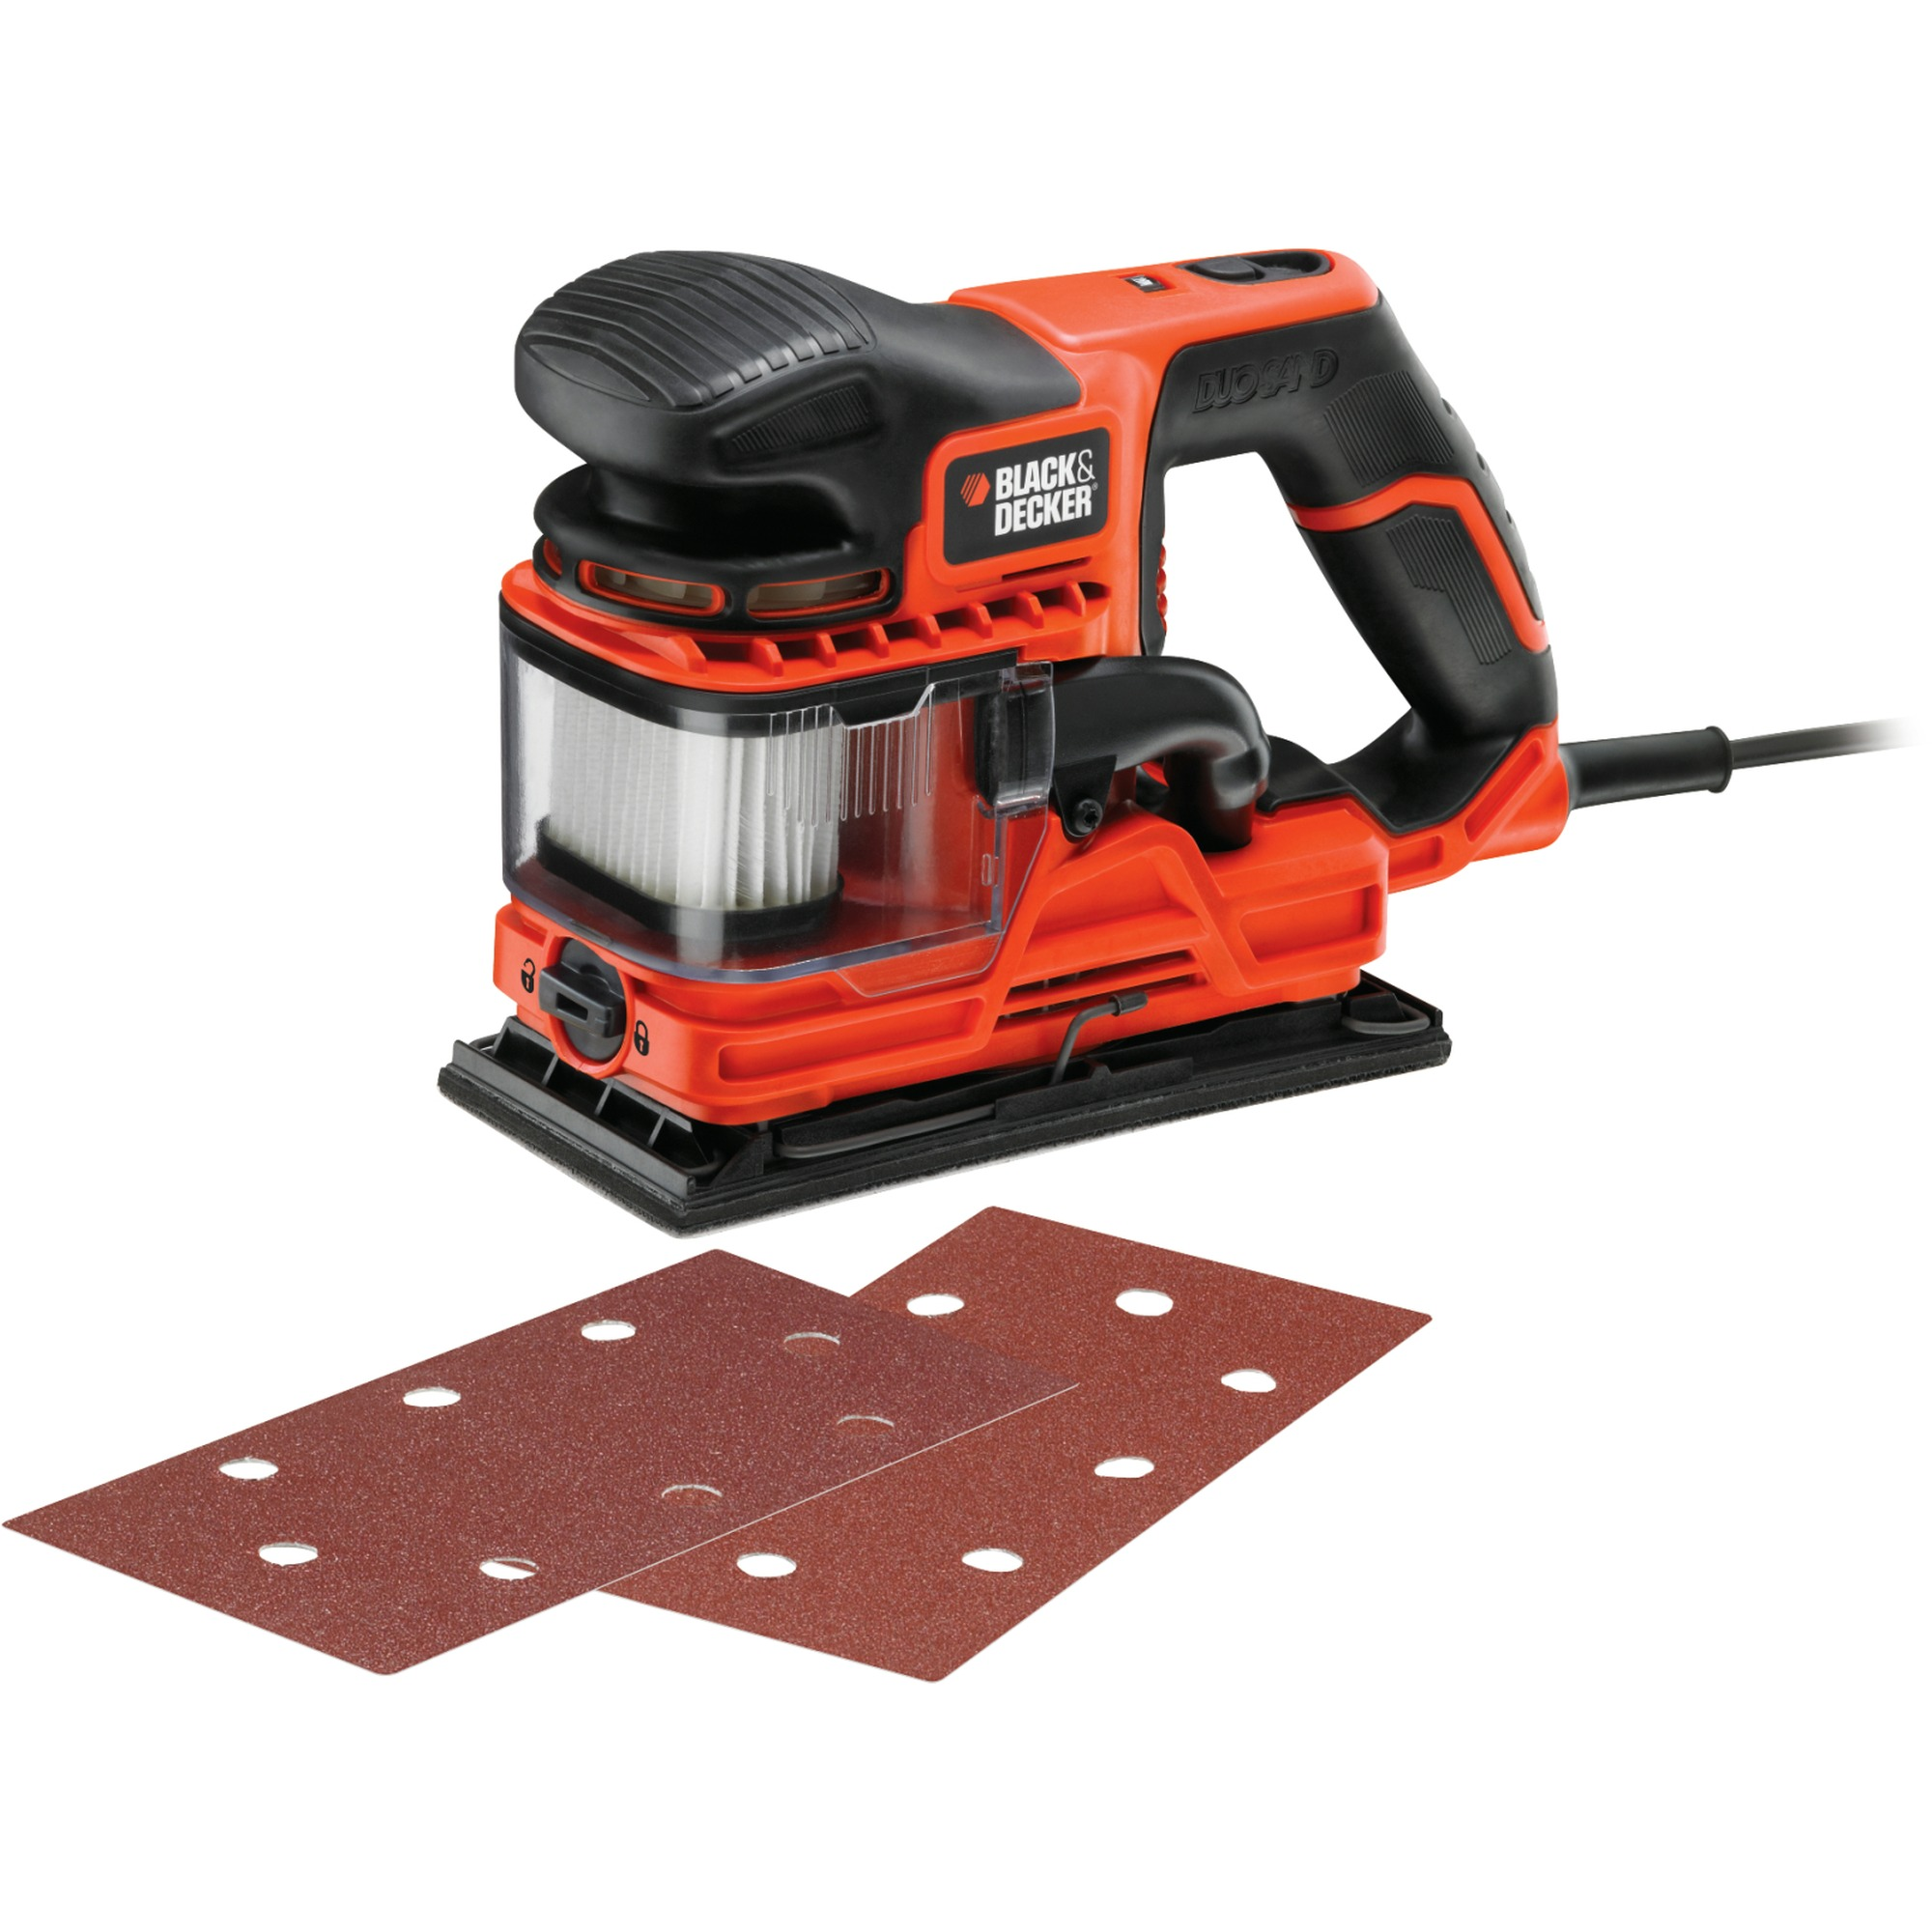 Black+Decker vlakschuurmachine